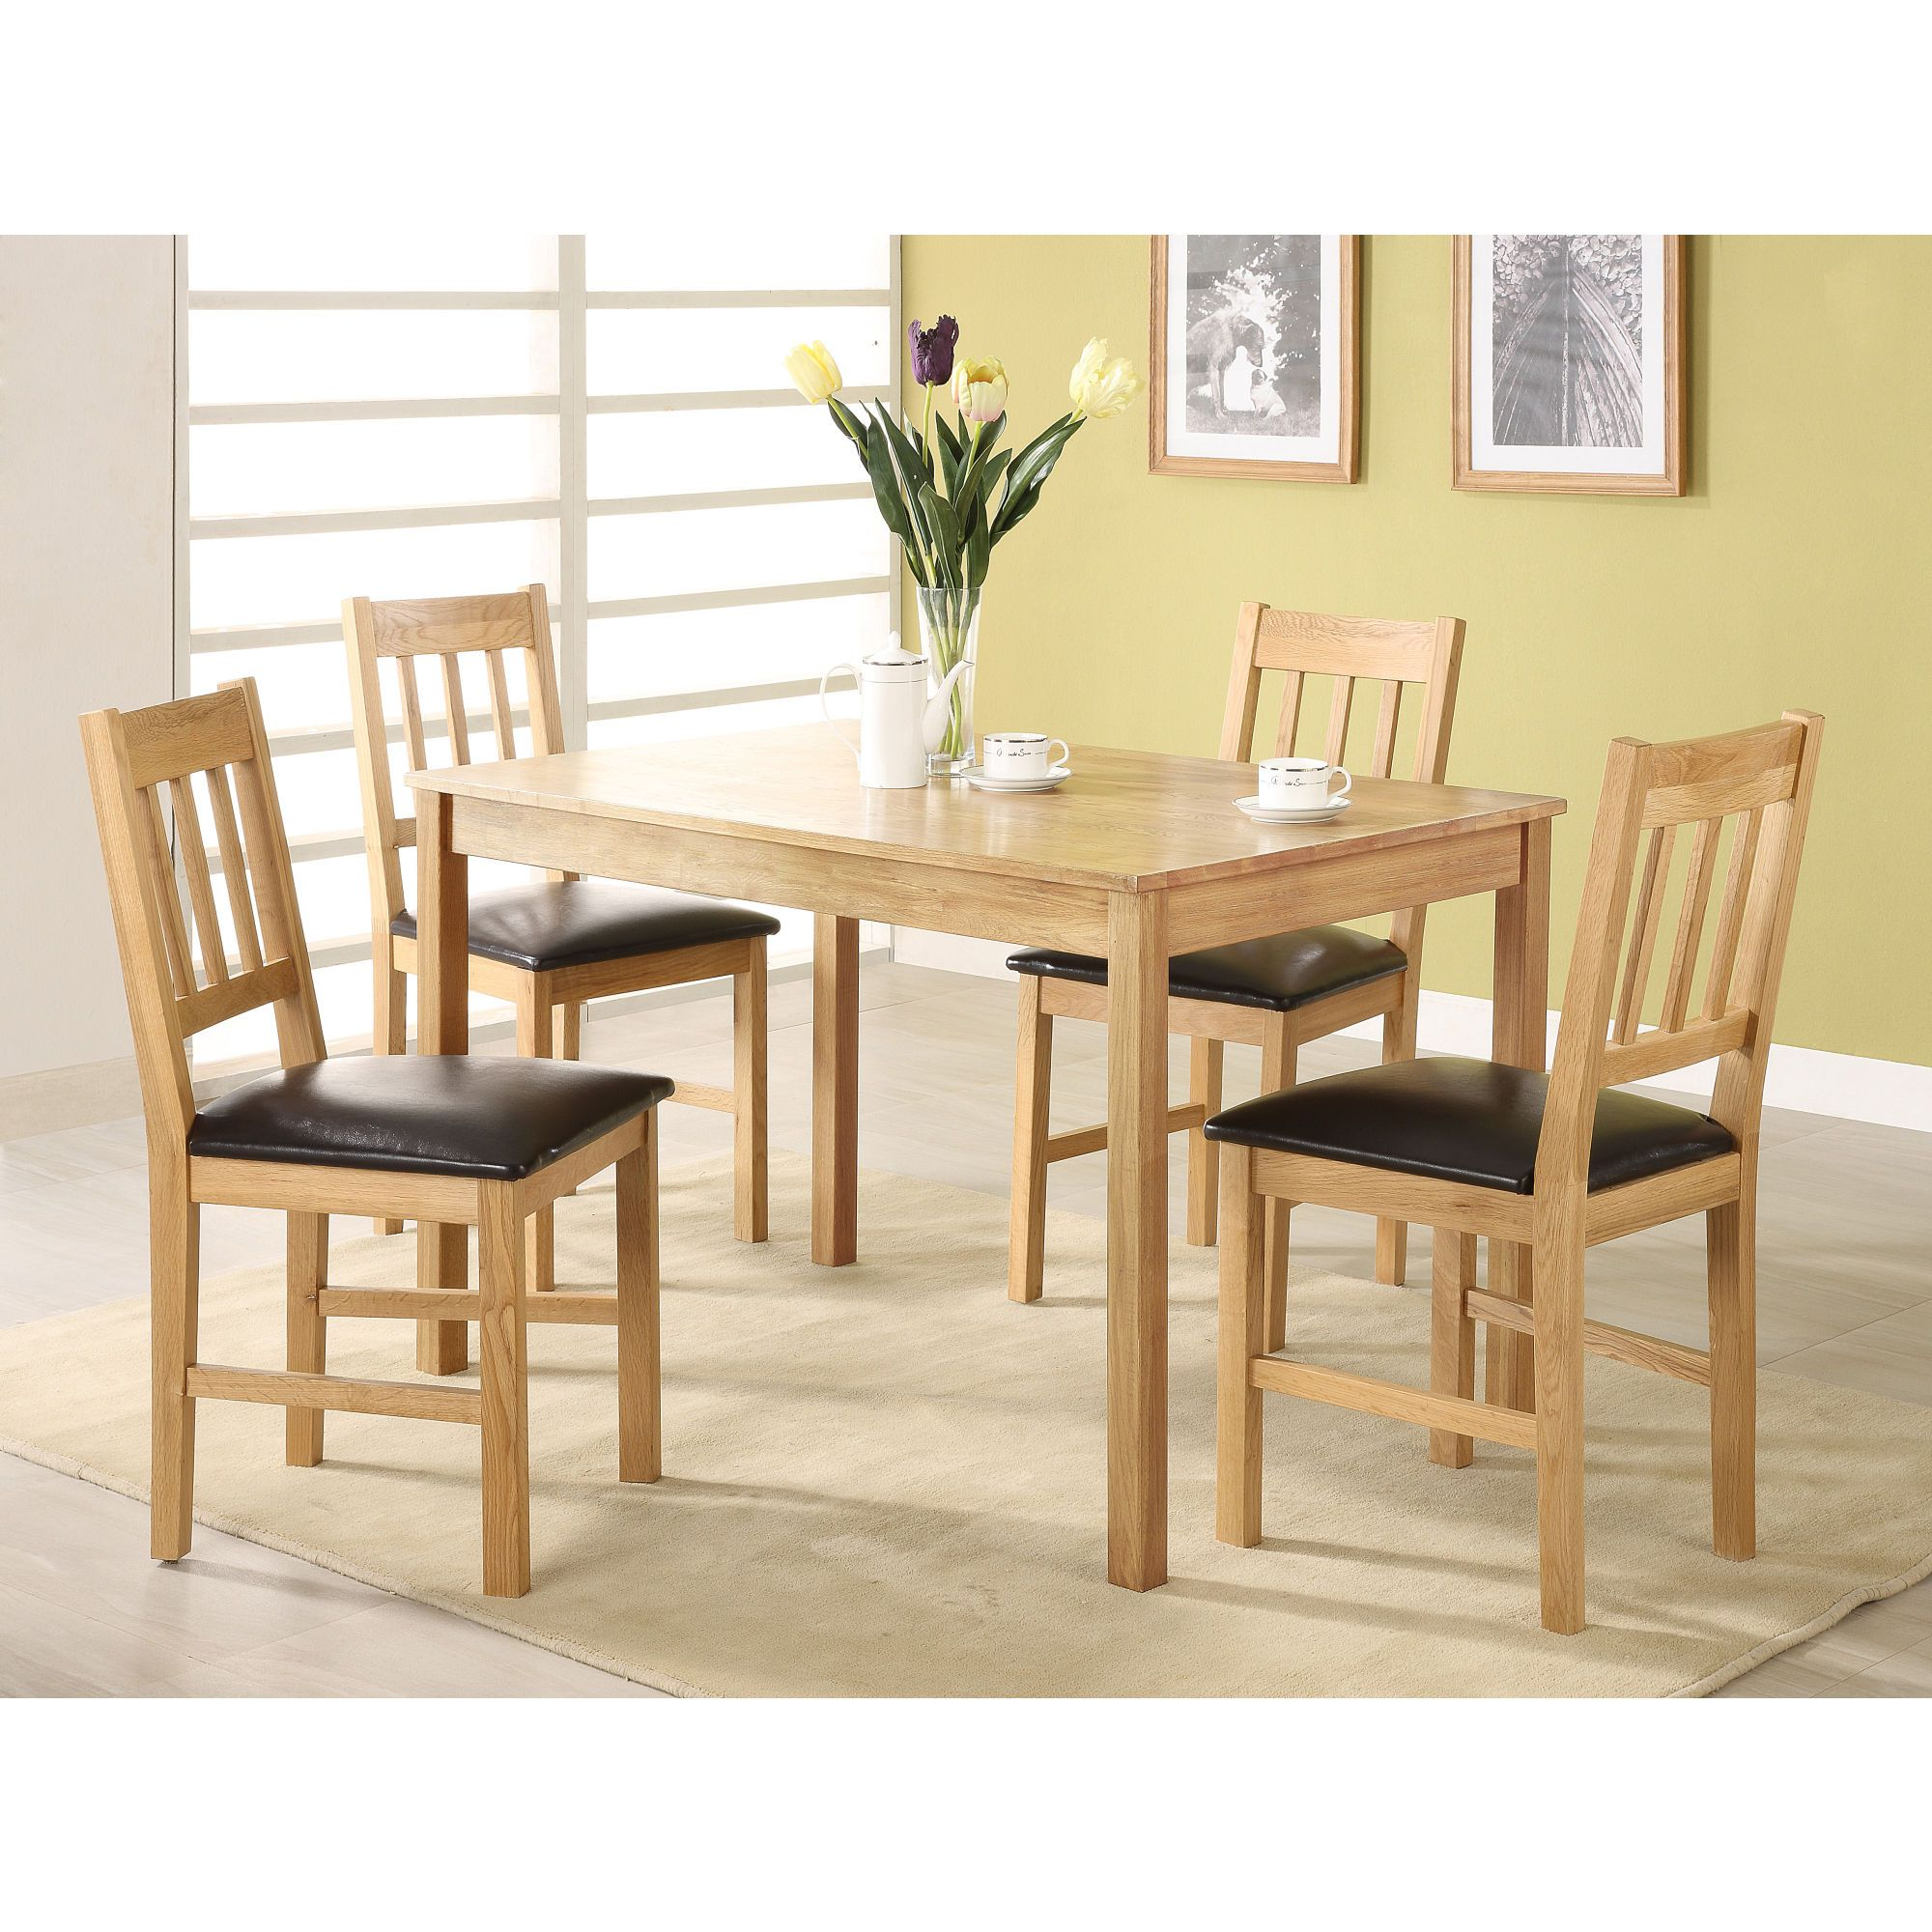 Heartlands Furniture Hyde 5 Piece Dining Set at Tesco Direct